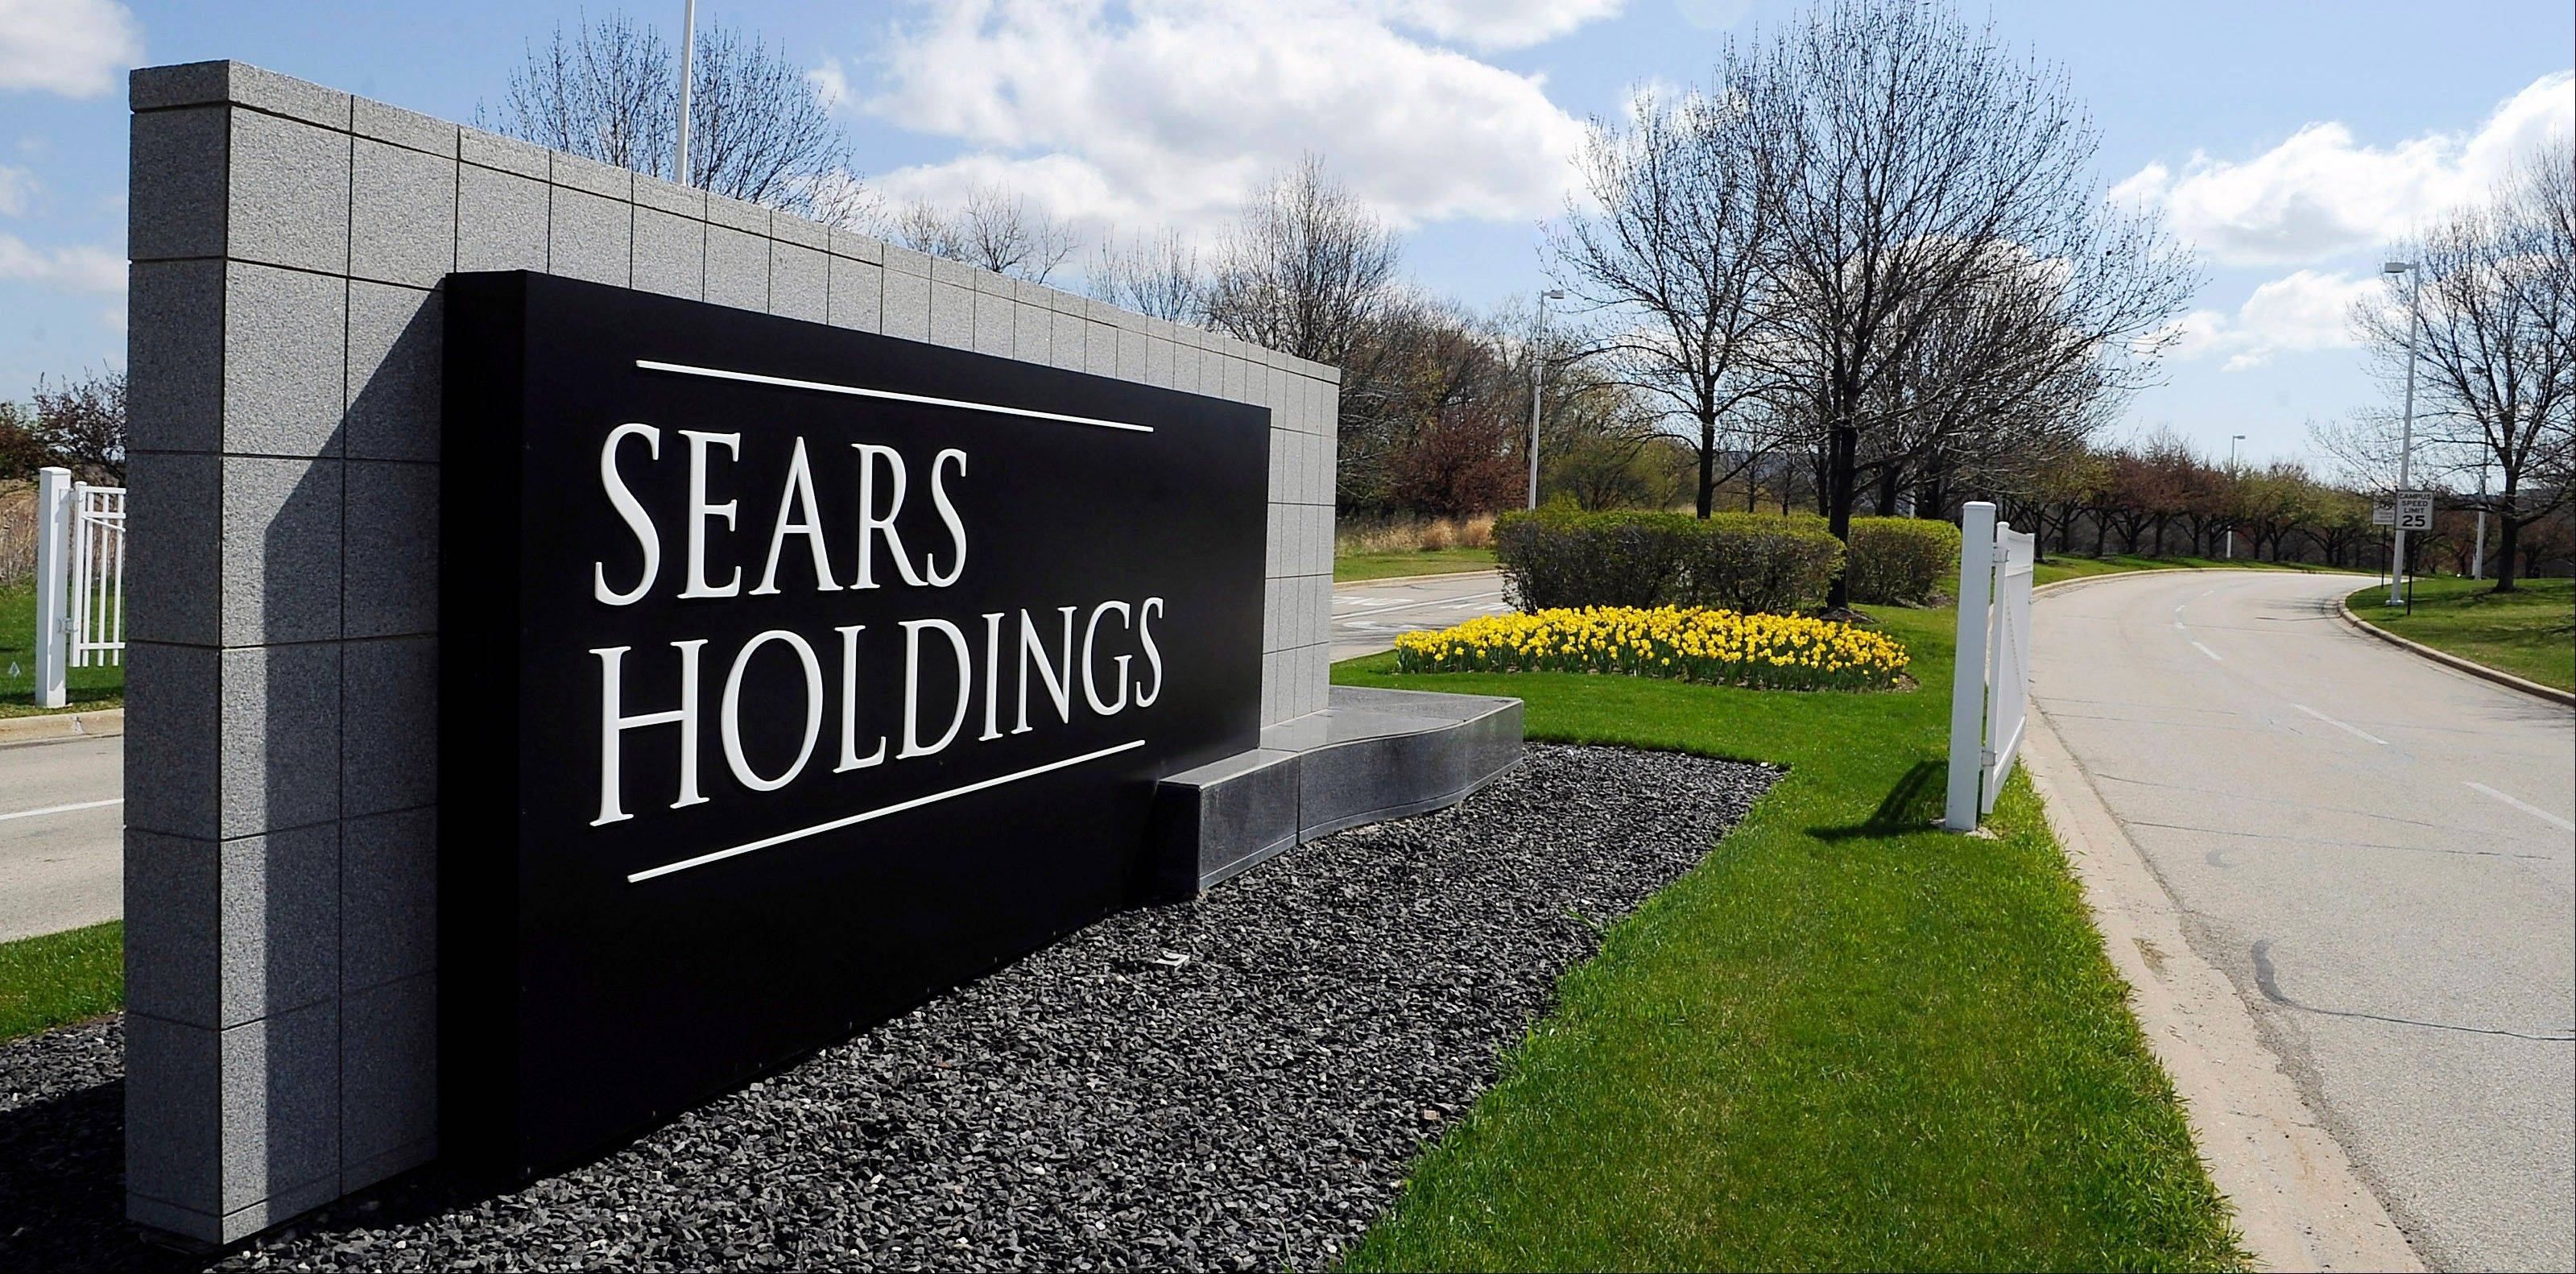 Hoffman Estates passes resolution to keep Sears